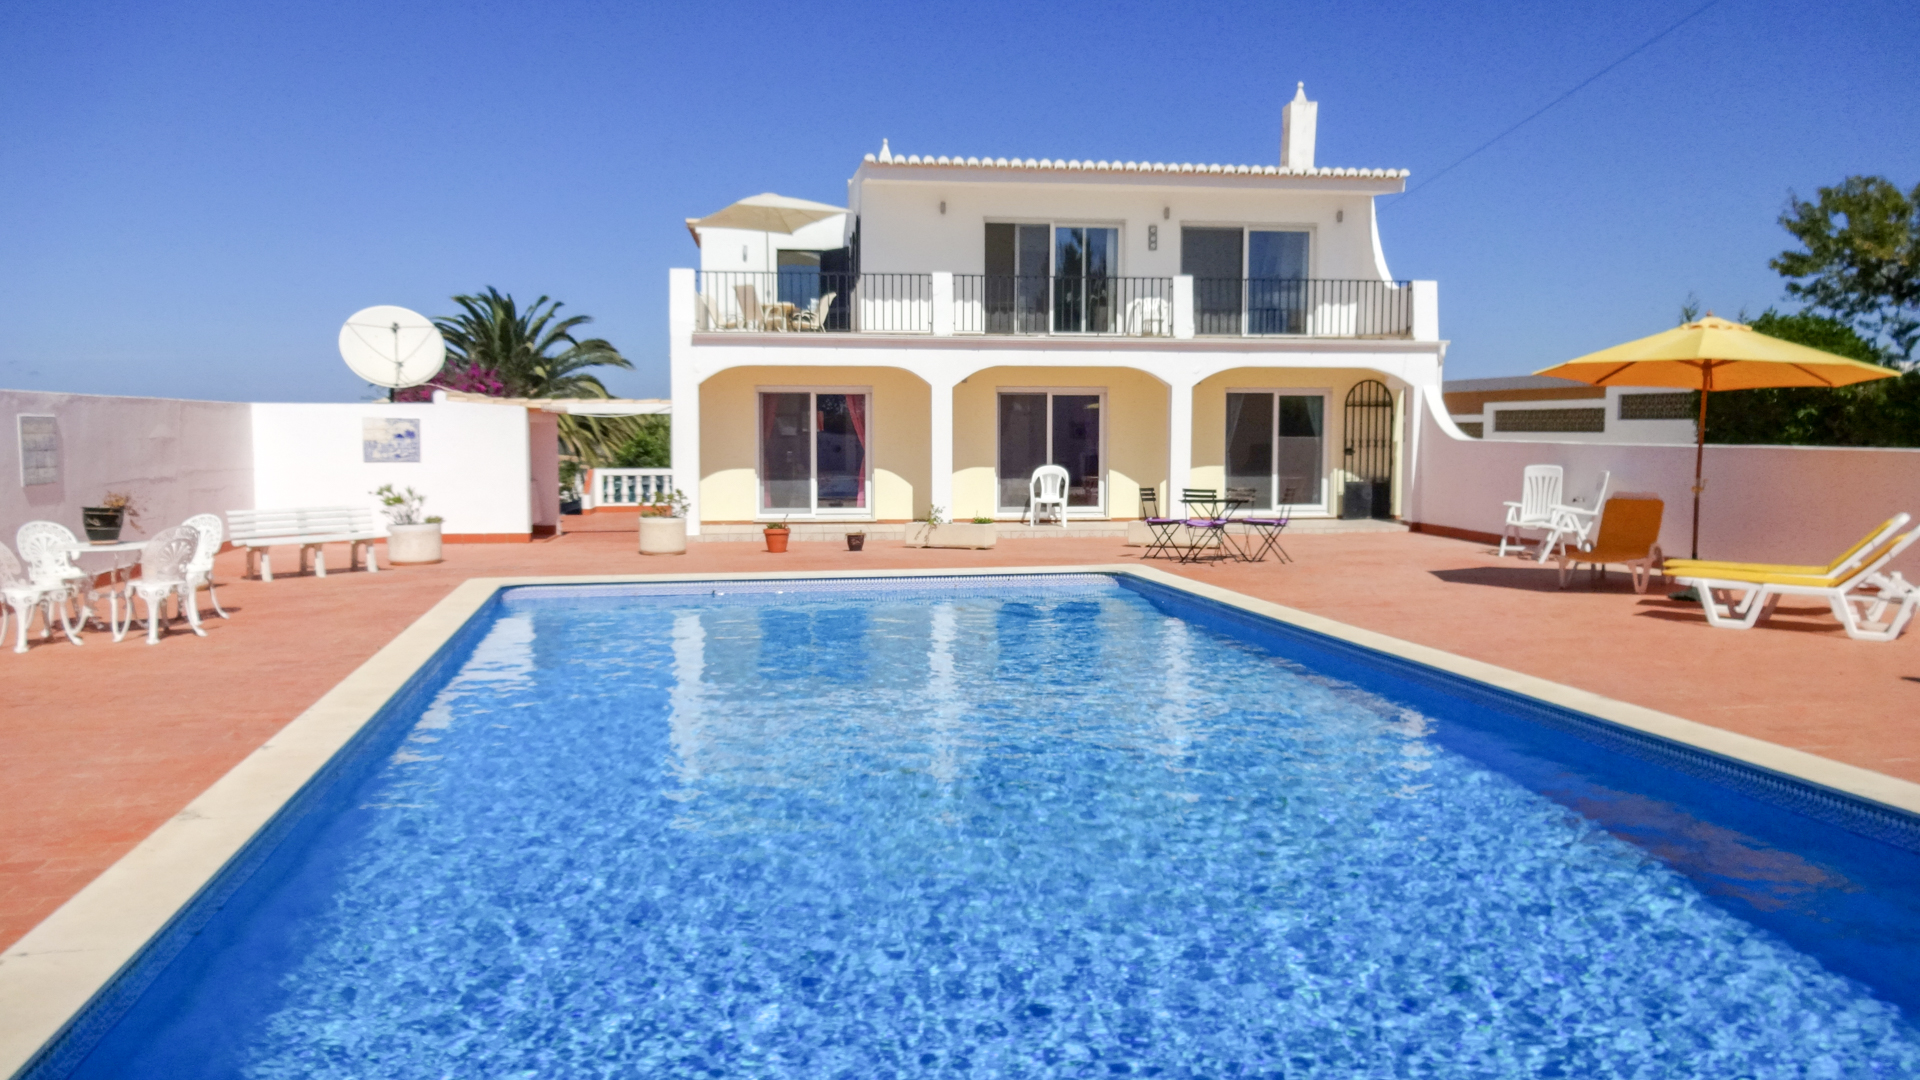 3 bed villa with magnificent sea views between burgau & luz in a tranquil 2,500m2 plot, west algarve